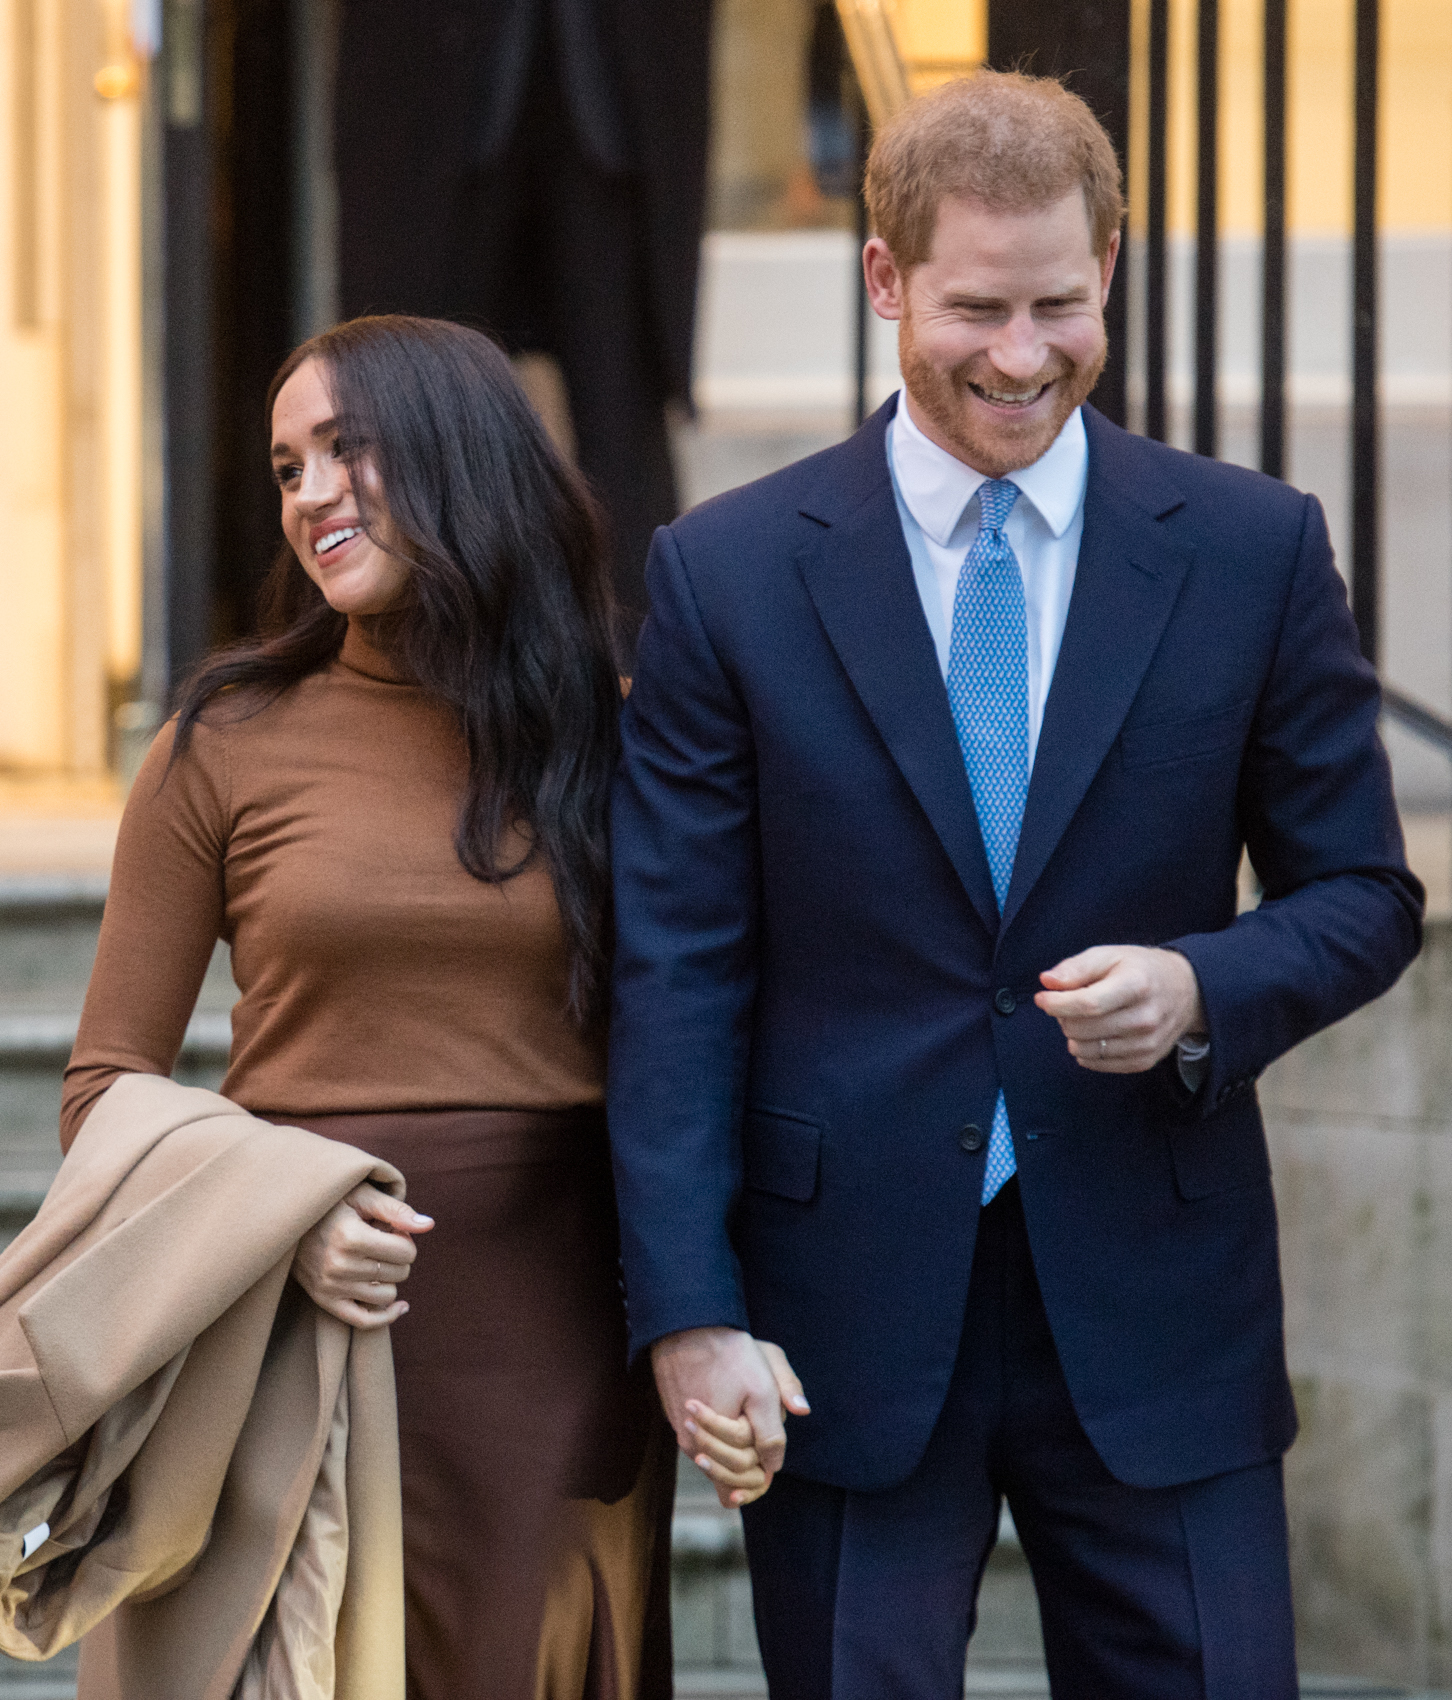 Prince Harry, Duke of Sussex and Meghan, Duchess of Sussex visit Canada House on January 07, 2020 in London, England.